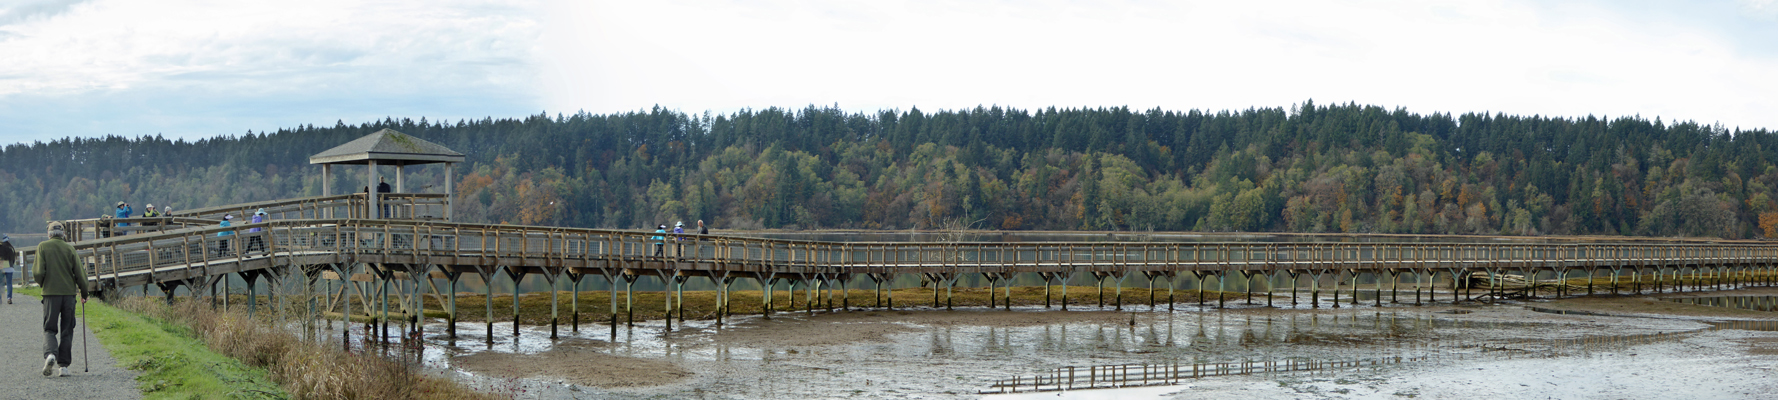 Observation tower boardwalk Nisqually